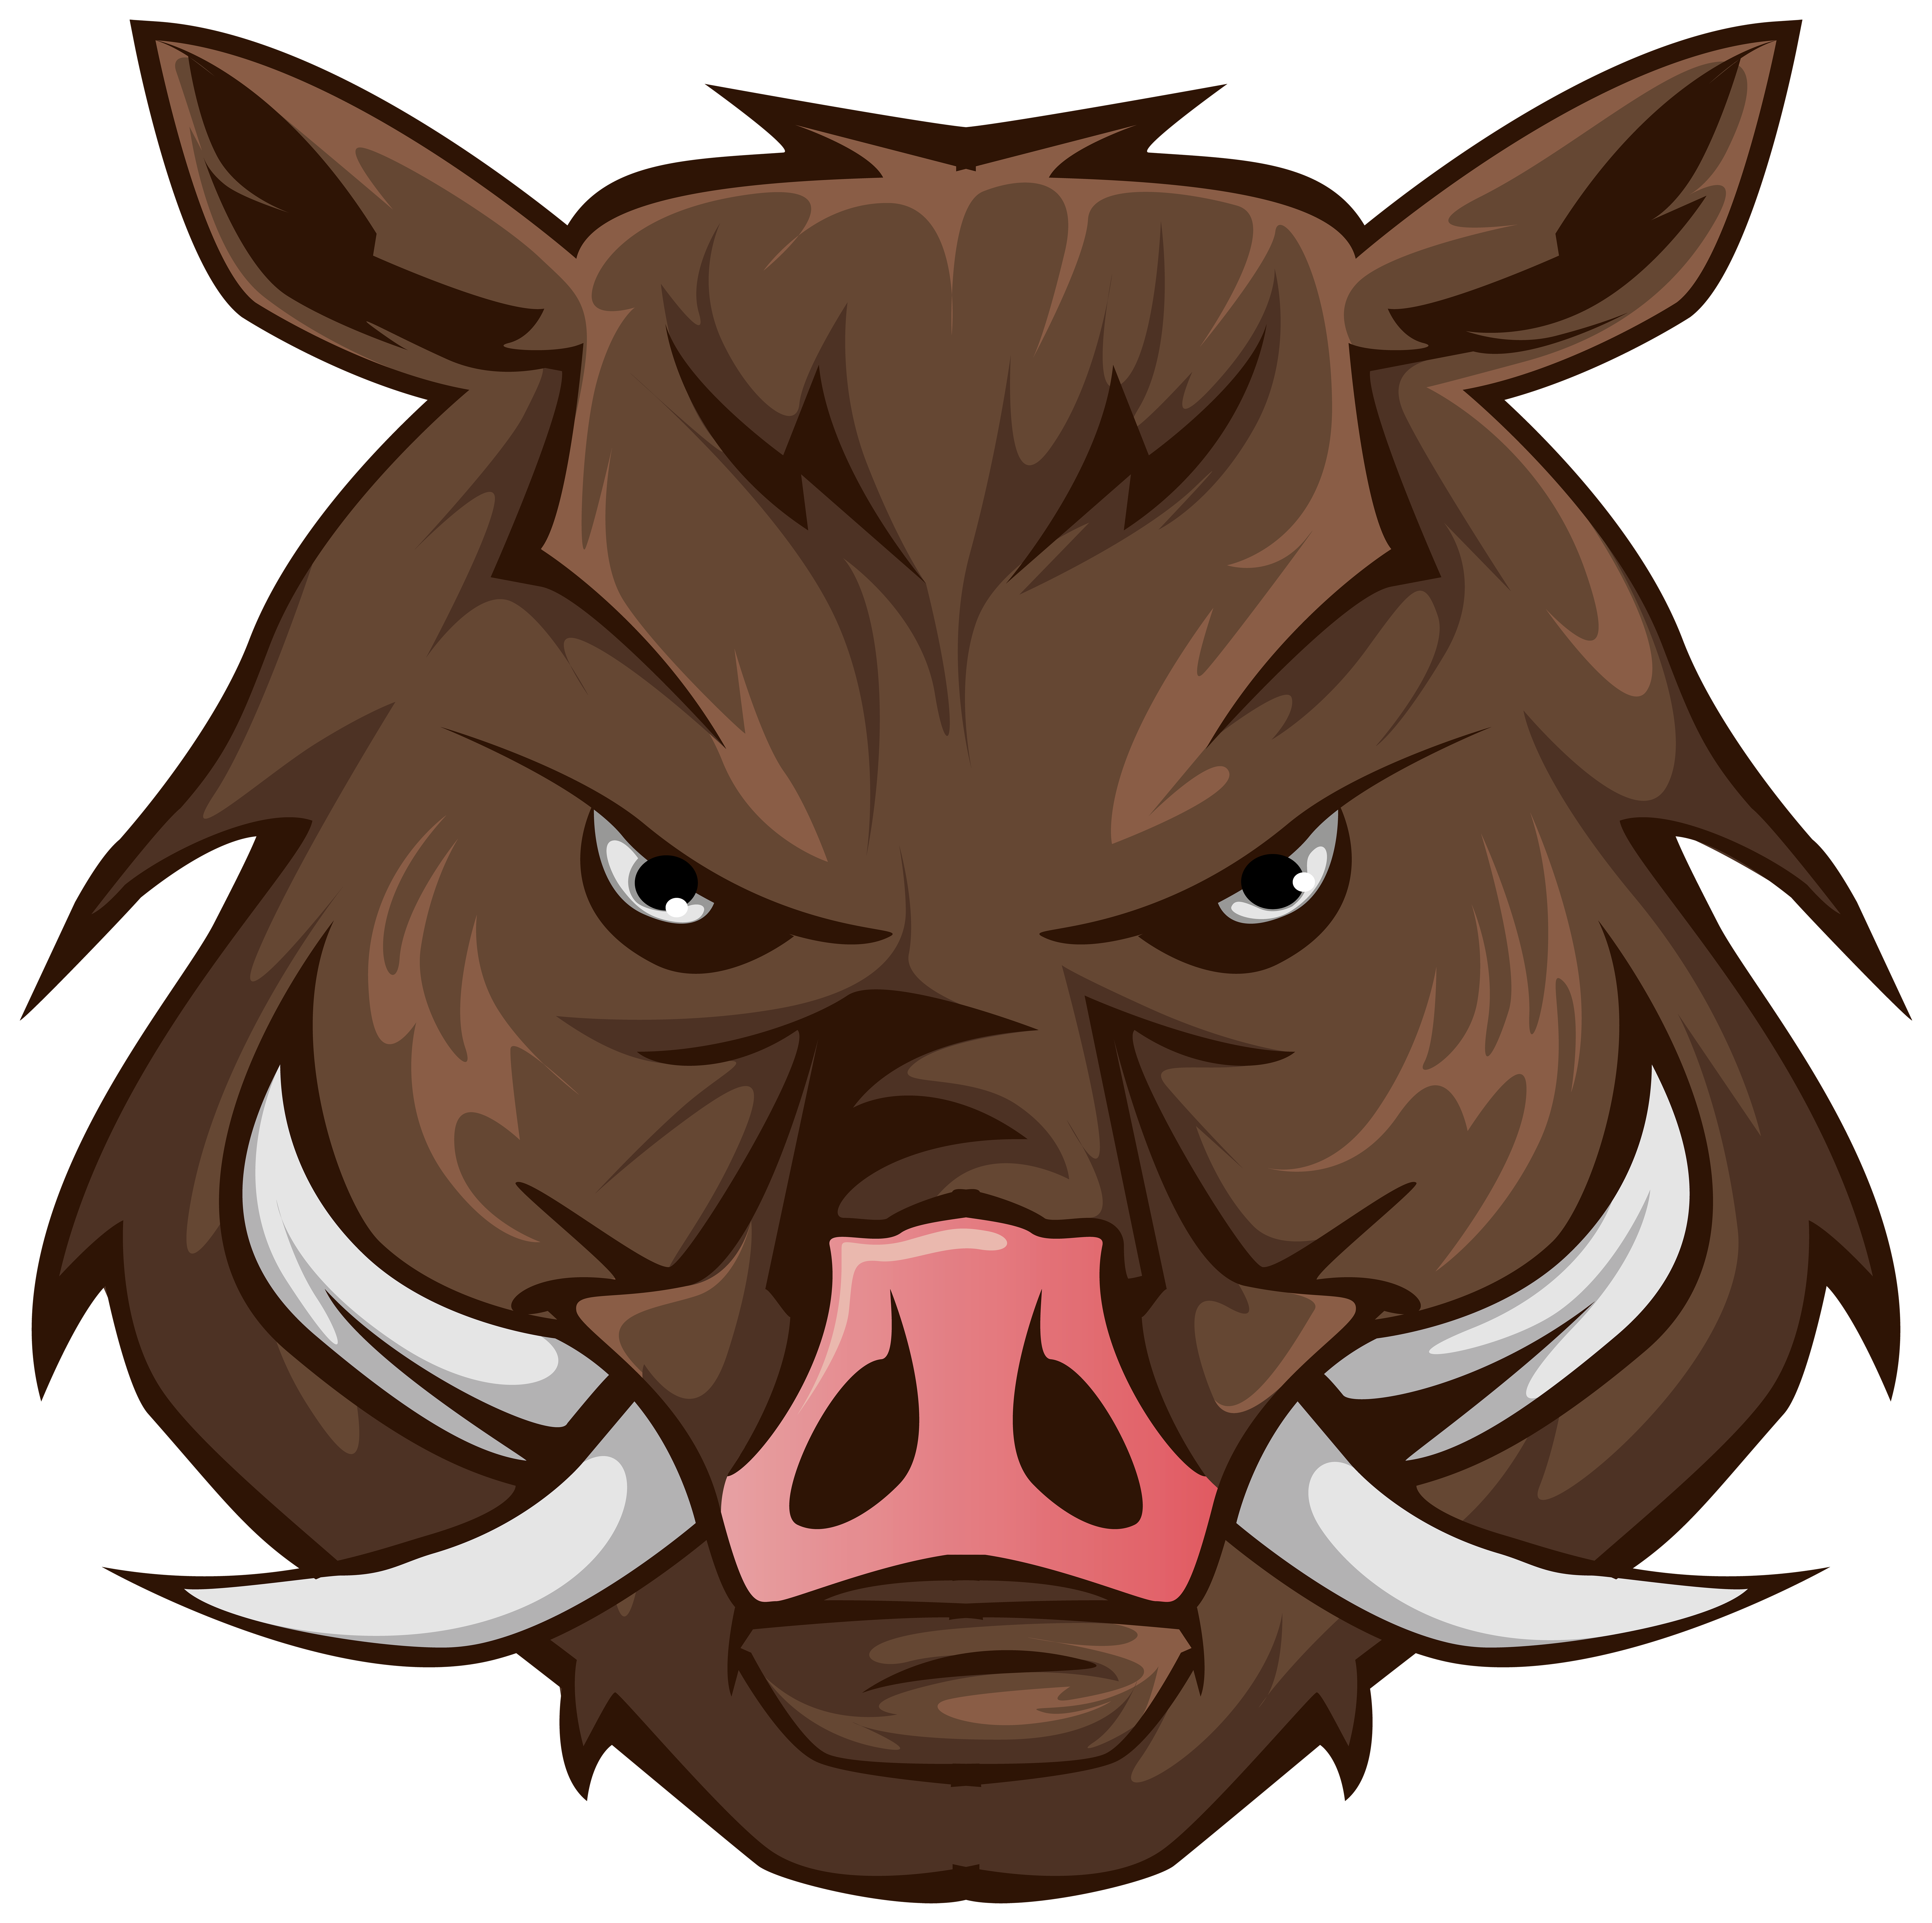 Clipart boar jpg library library Boar Head PNG Clipart Image | Gallery Yopriceville - High-Quality ... jpg library library